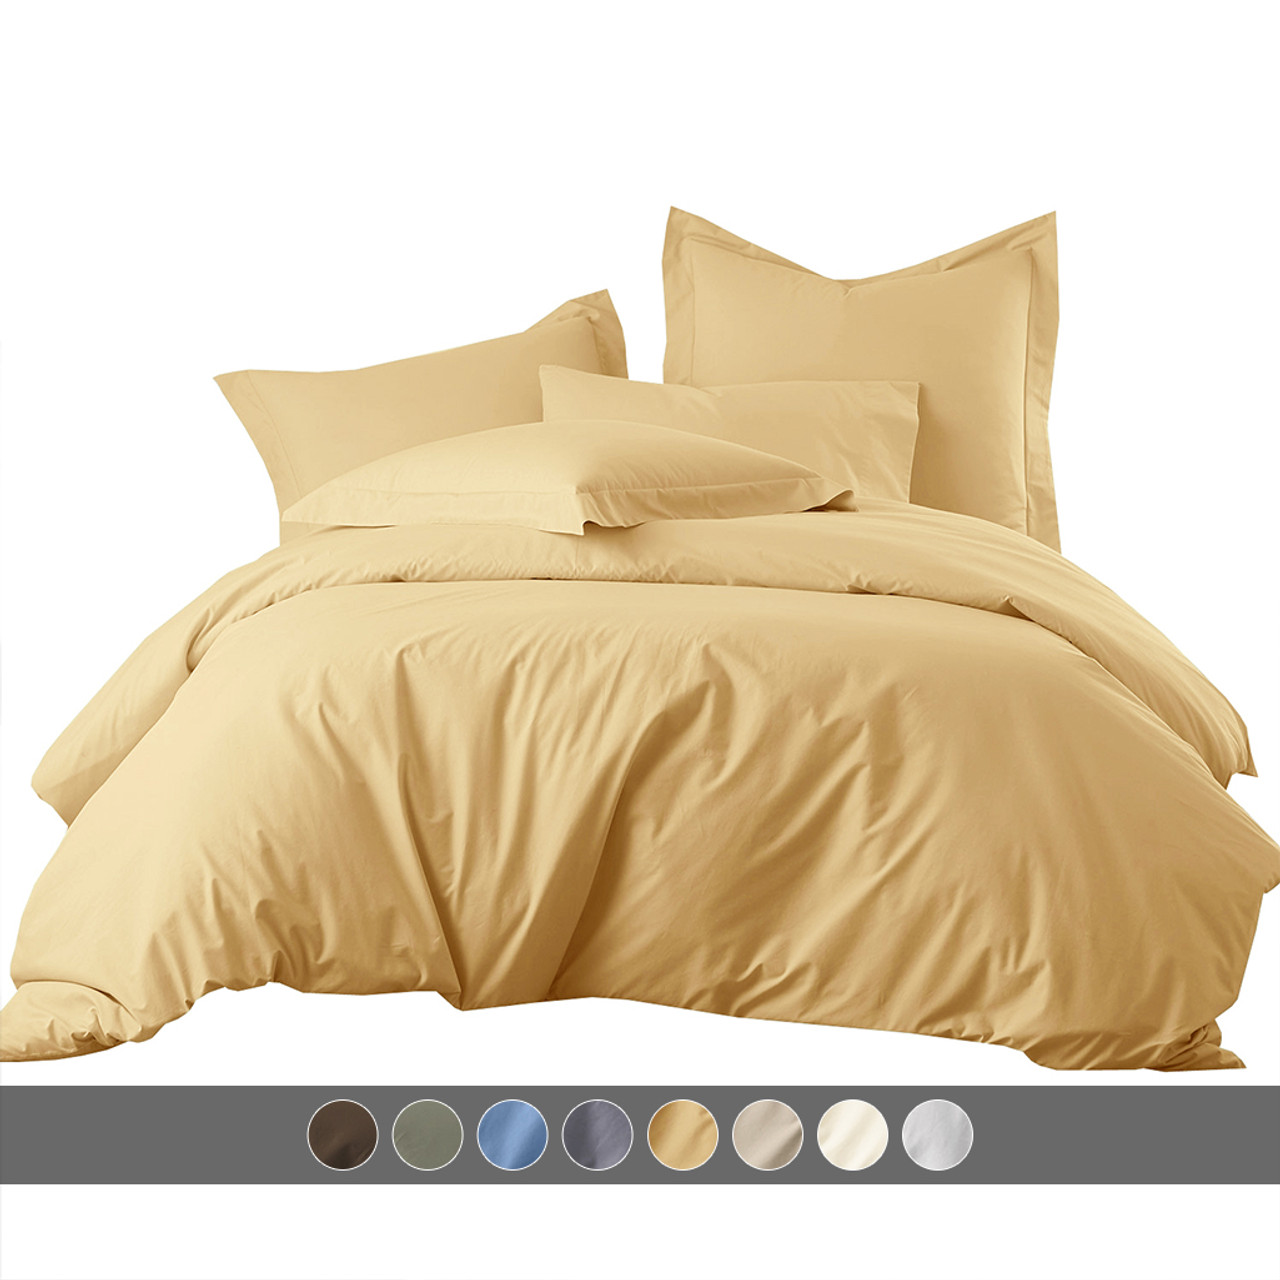 Wrinkle-Free Duvet Cover Set 650 Thread Count Cotton Blend Duvet Covers Shams